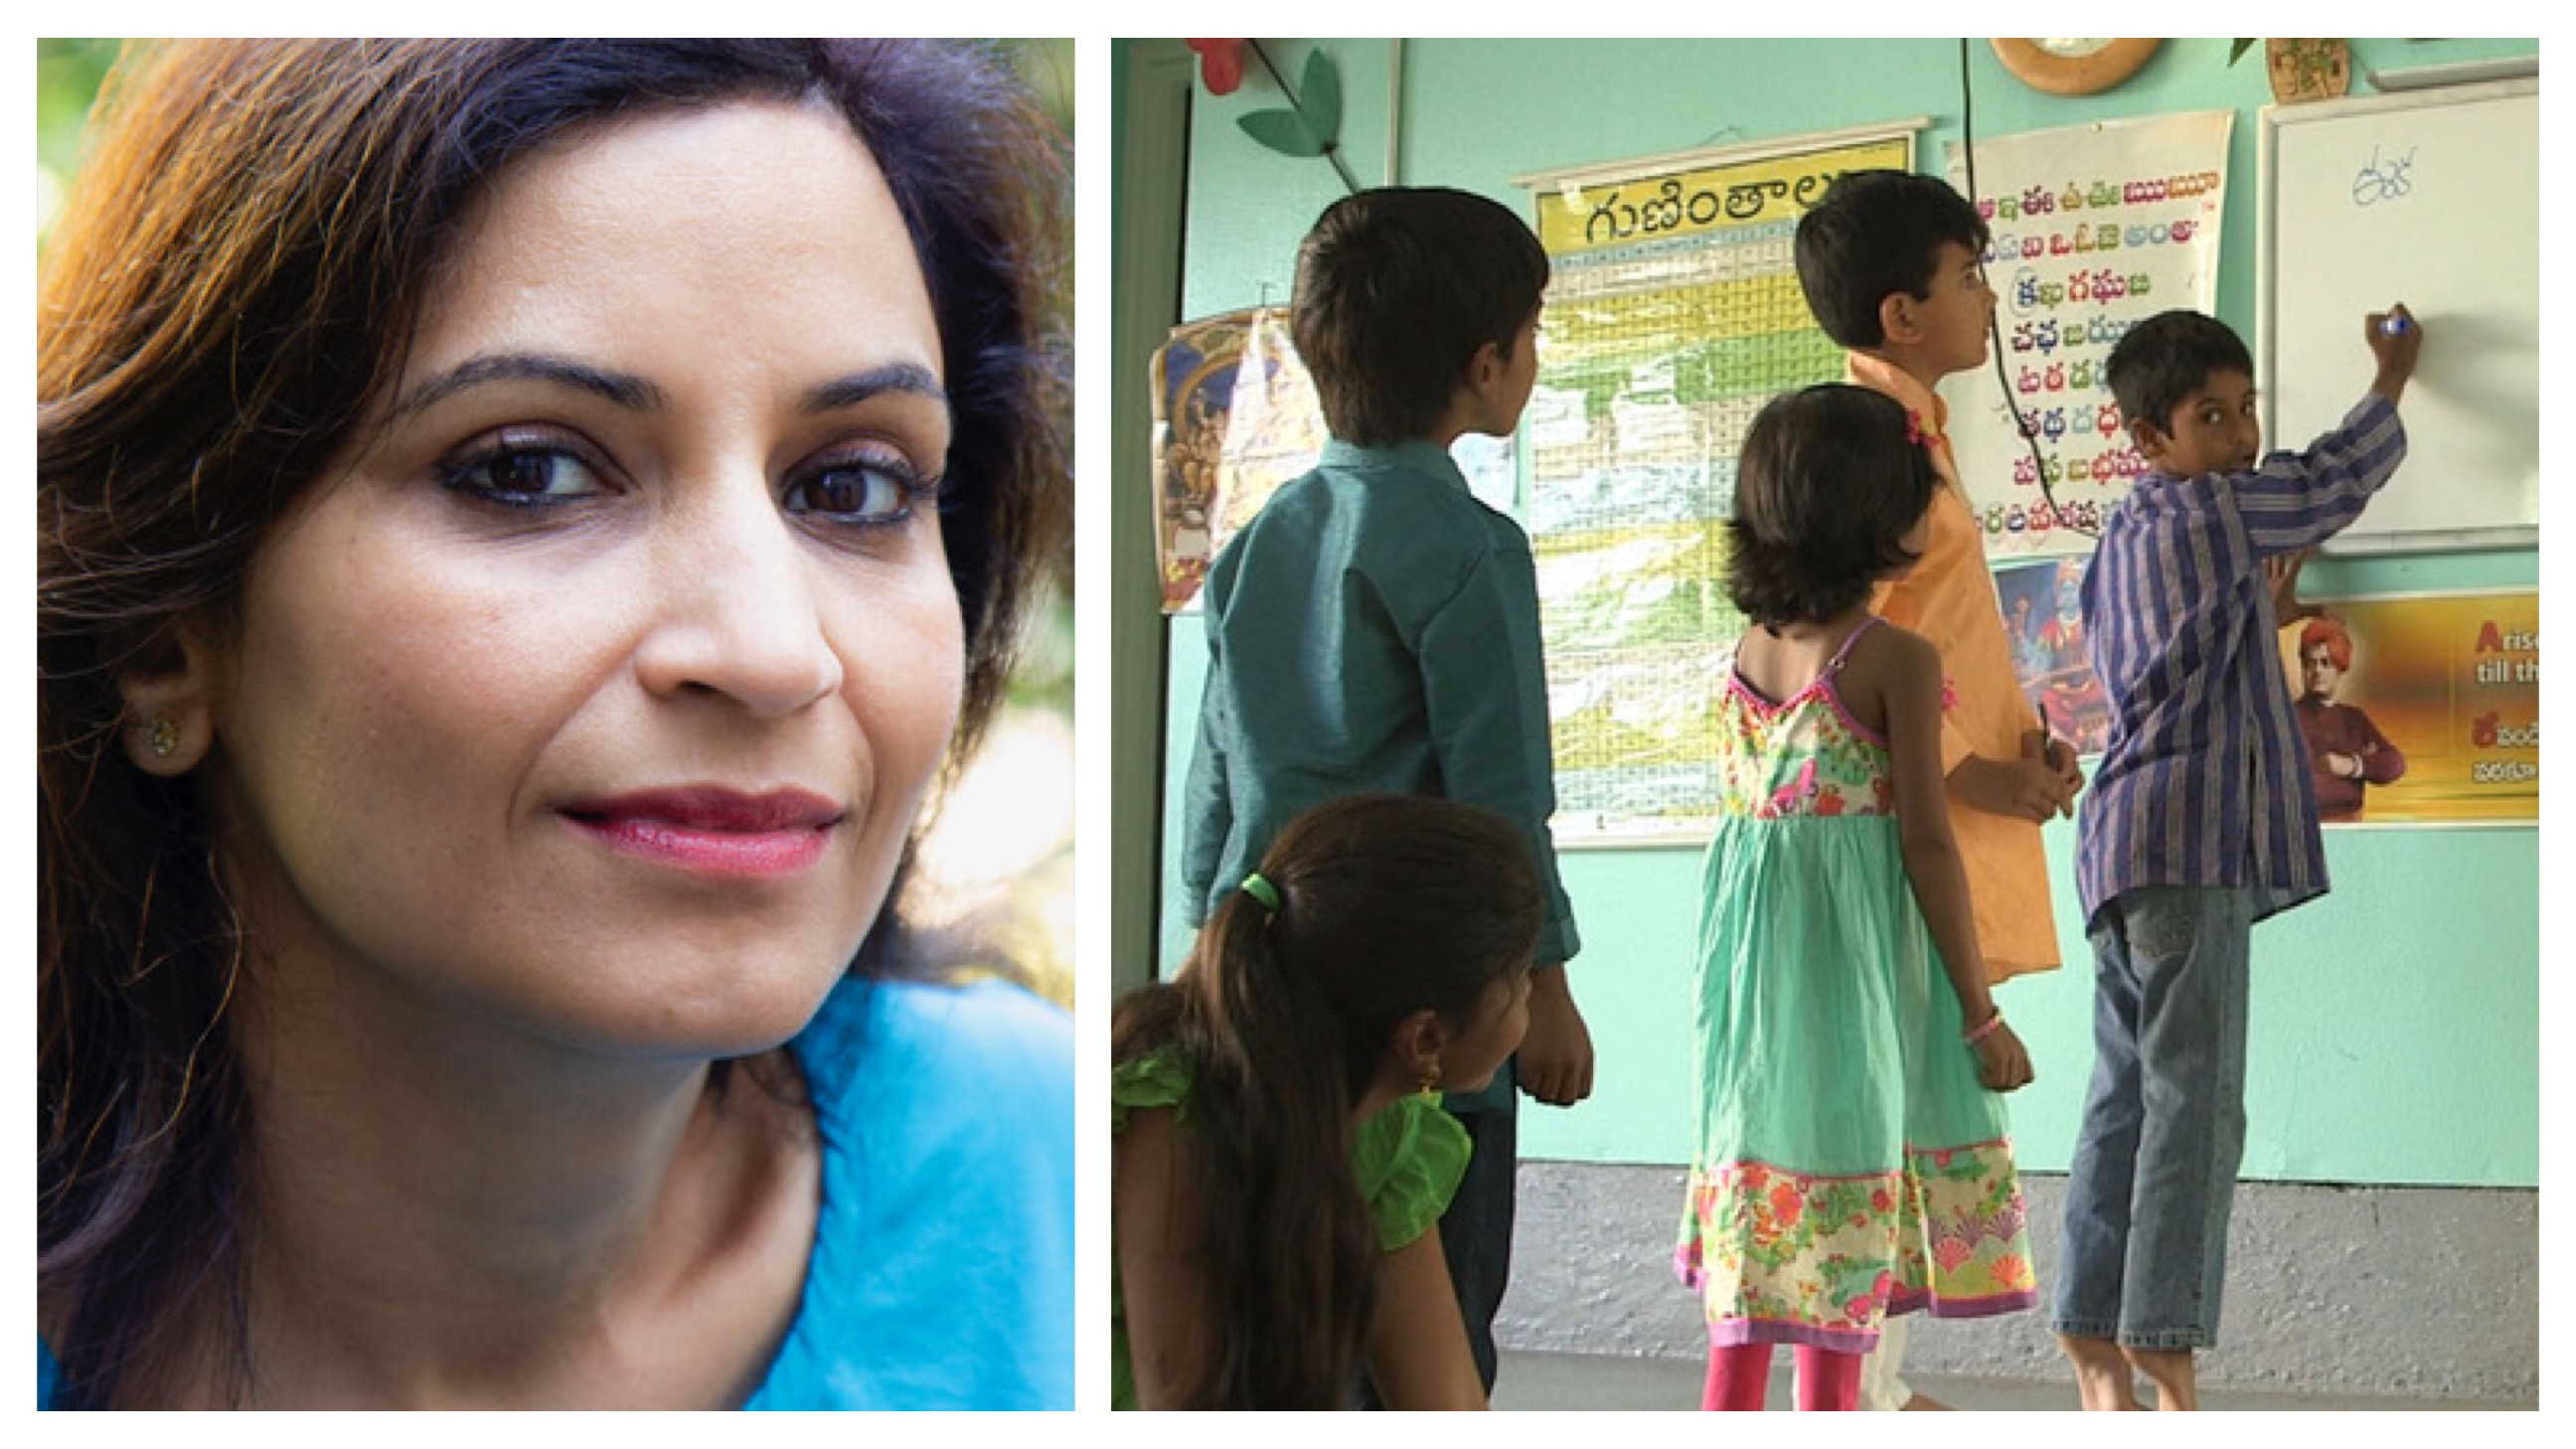 A South Asian woman is looking at the camera with a tiny smile for her portrait on the left; on the right is an image of South Asian school children sitting on the floor participating in class.